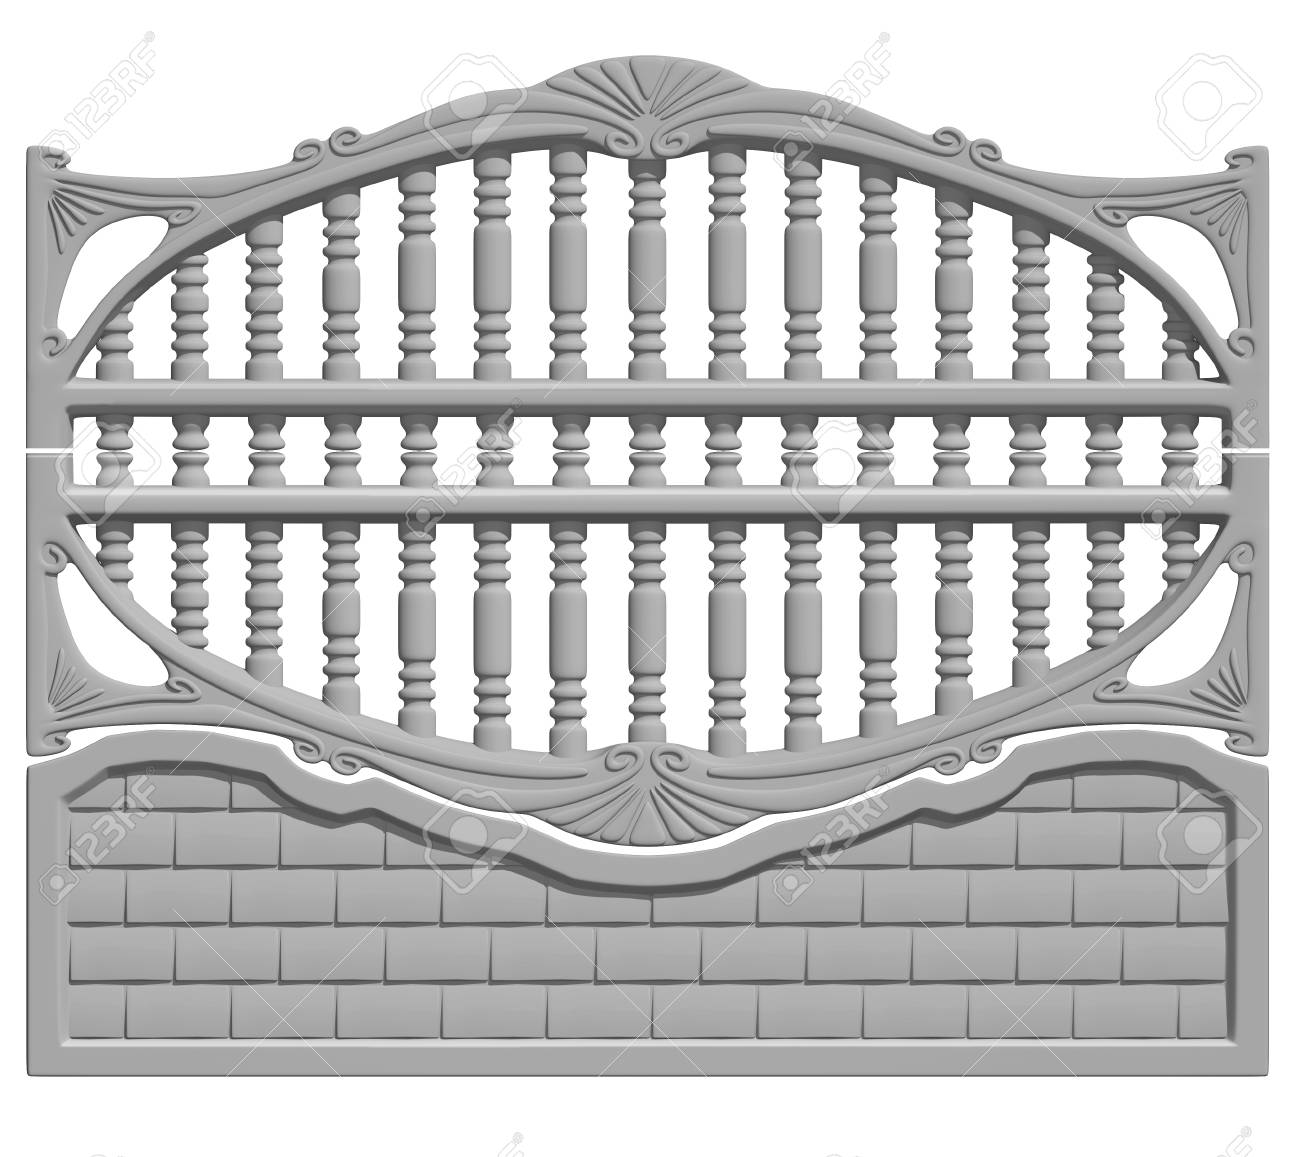 Illustration of a concrete fence on white background, product image to be included in the catalog - 36872318